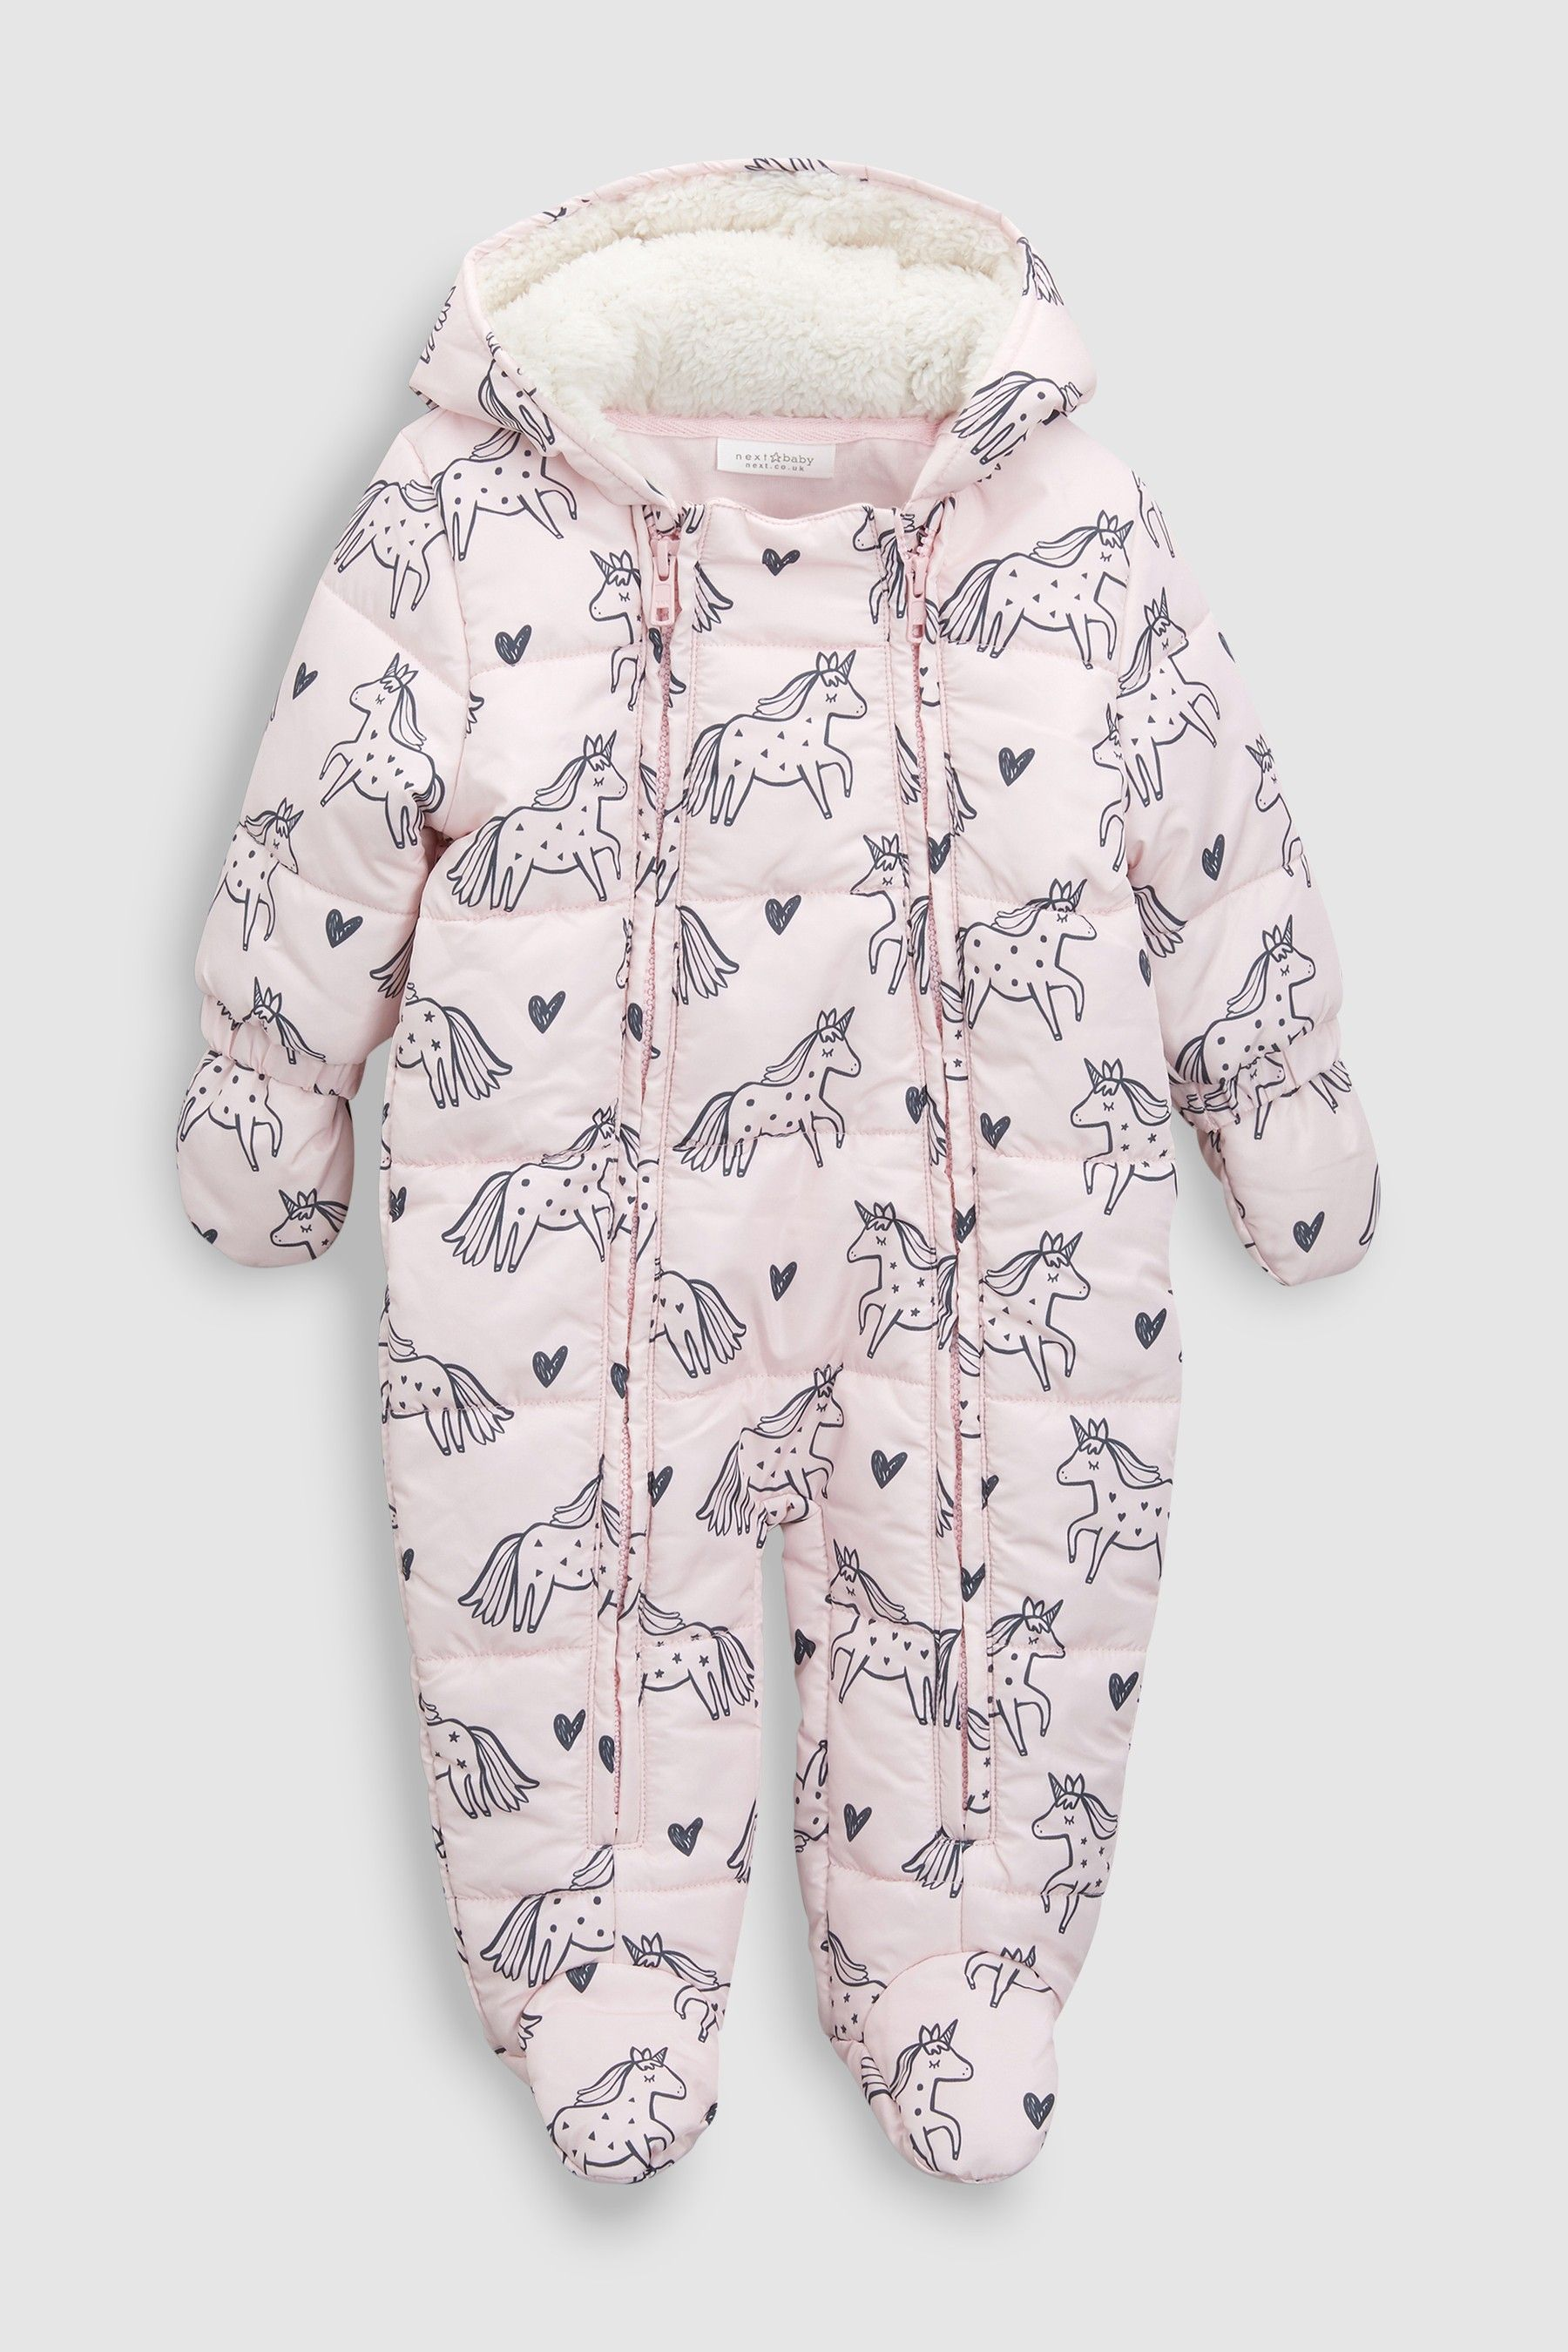 6e6ad0902088 Girls Next Pink Unicorn All-In-One (0mths-2yrs) - Pink